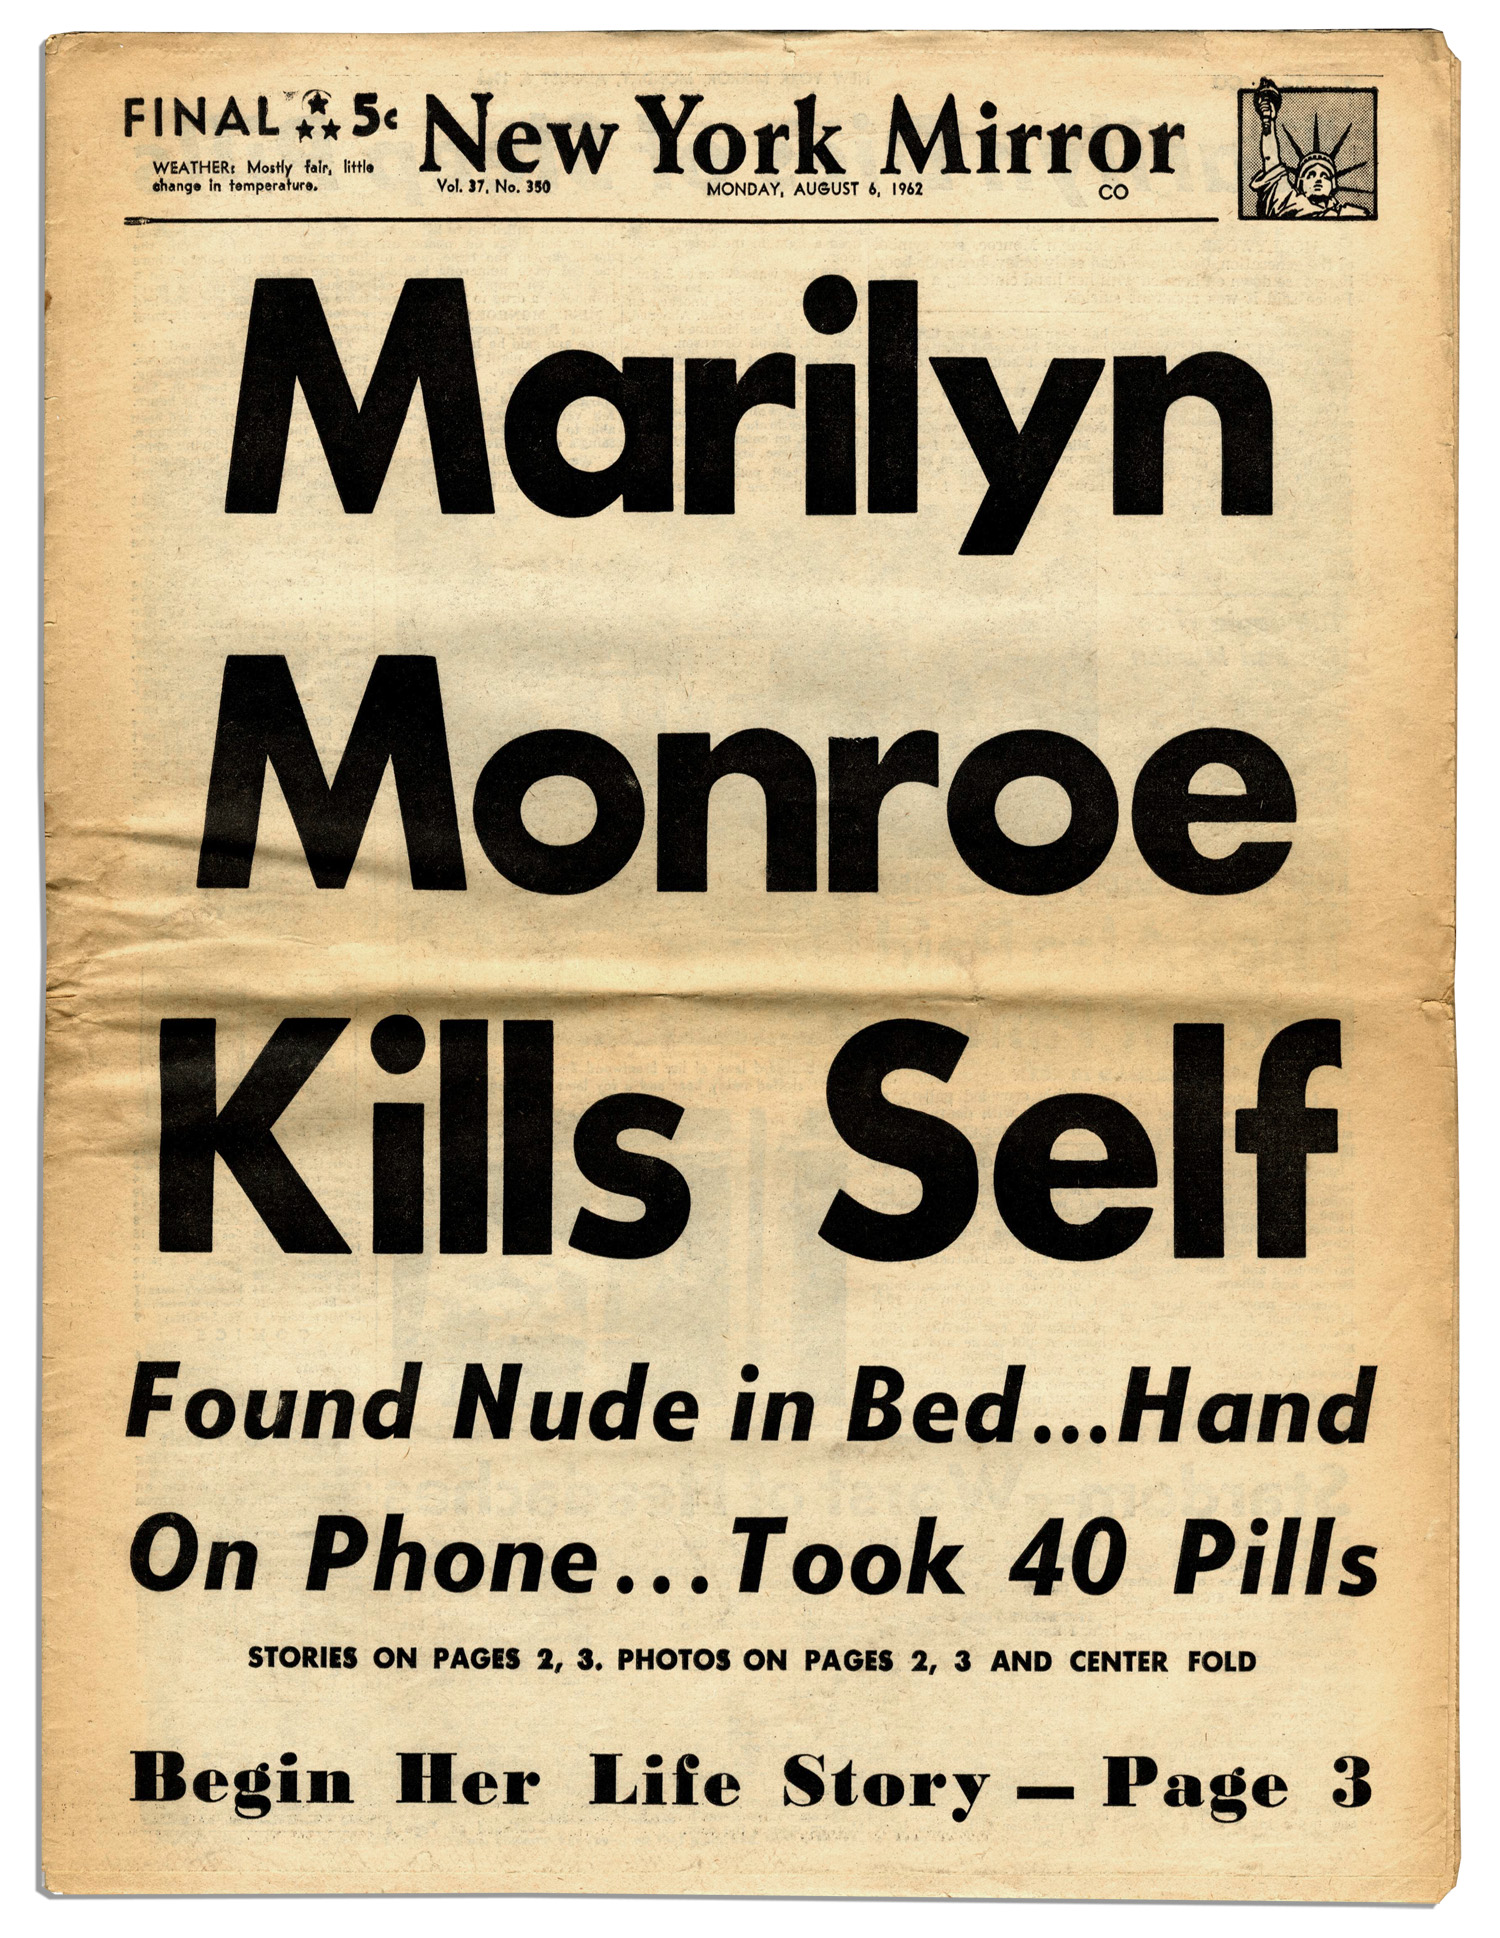 New York Daily Mirror  front page article, August 6, 1962